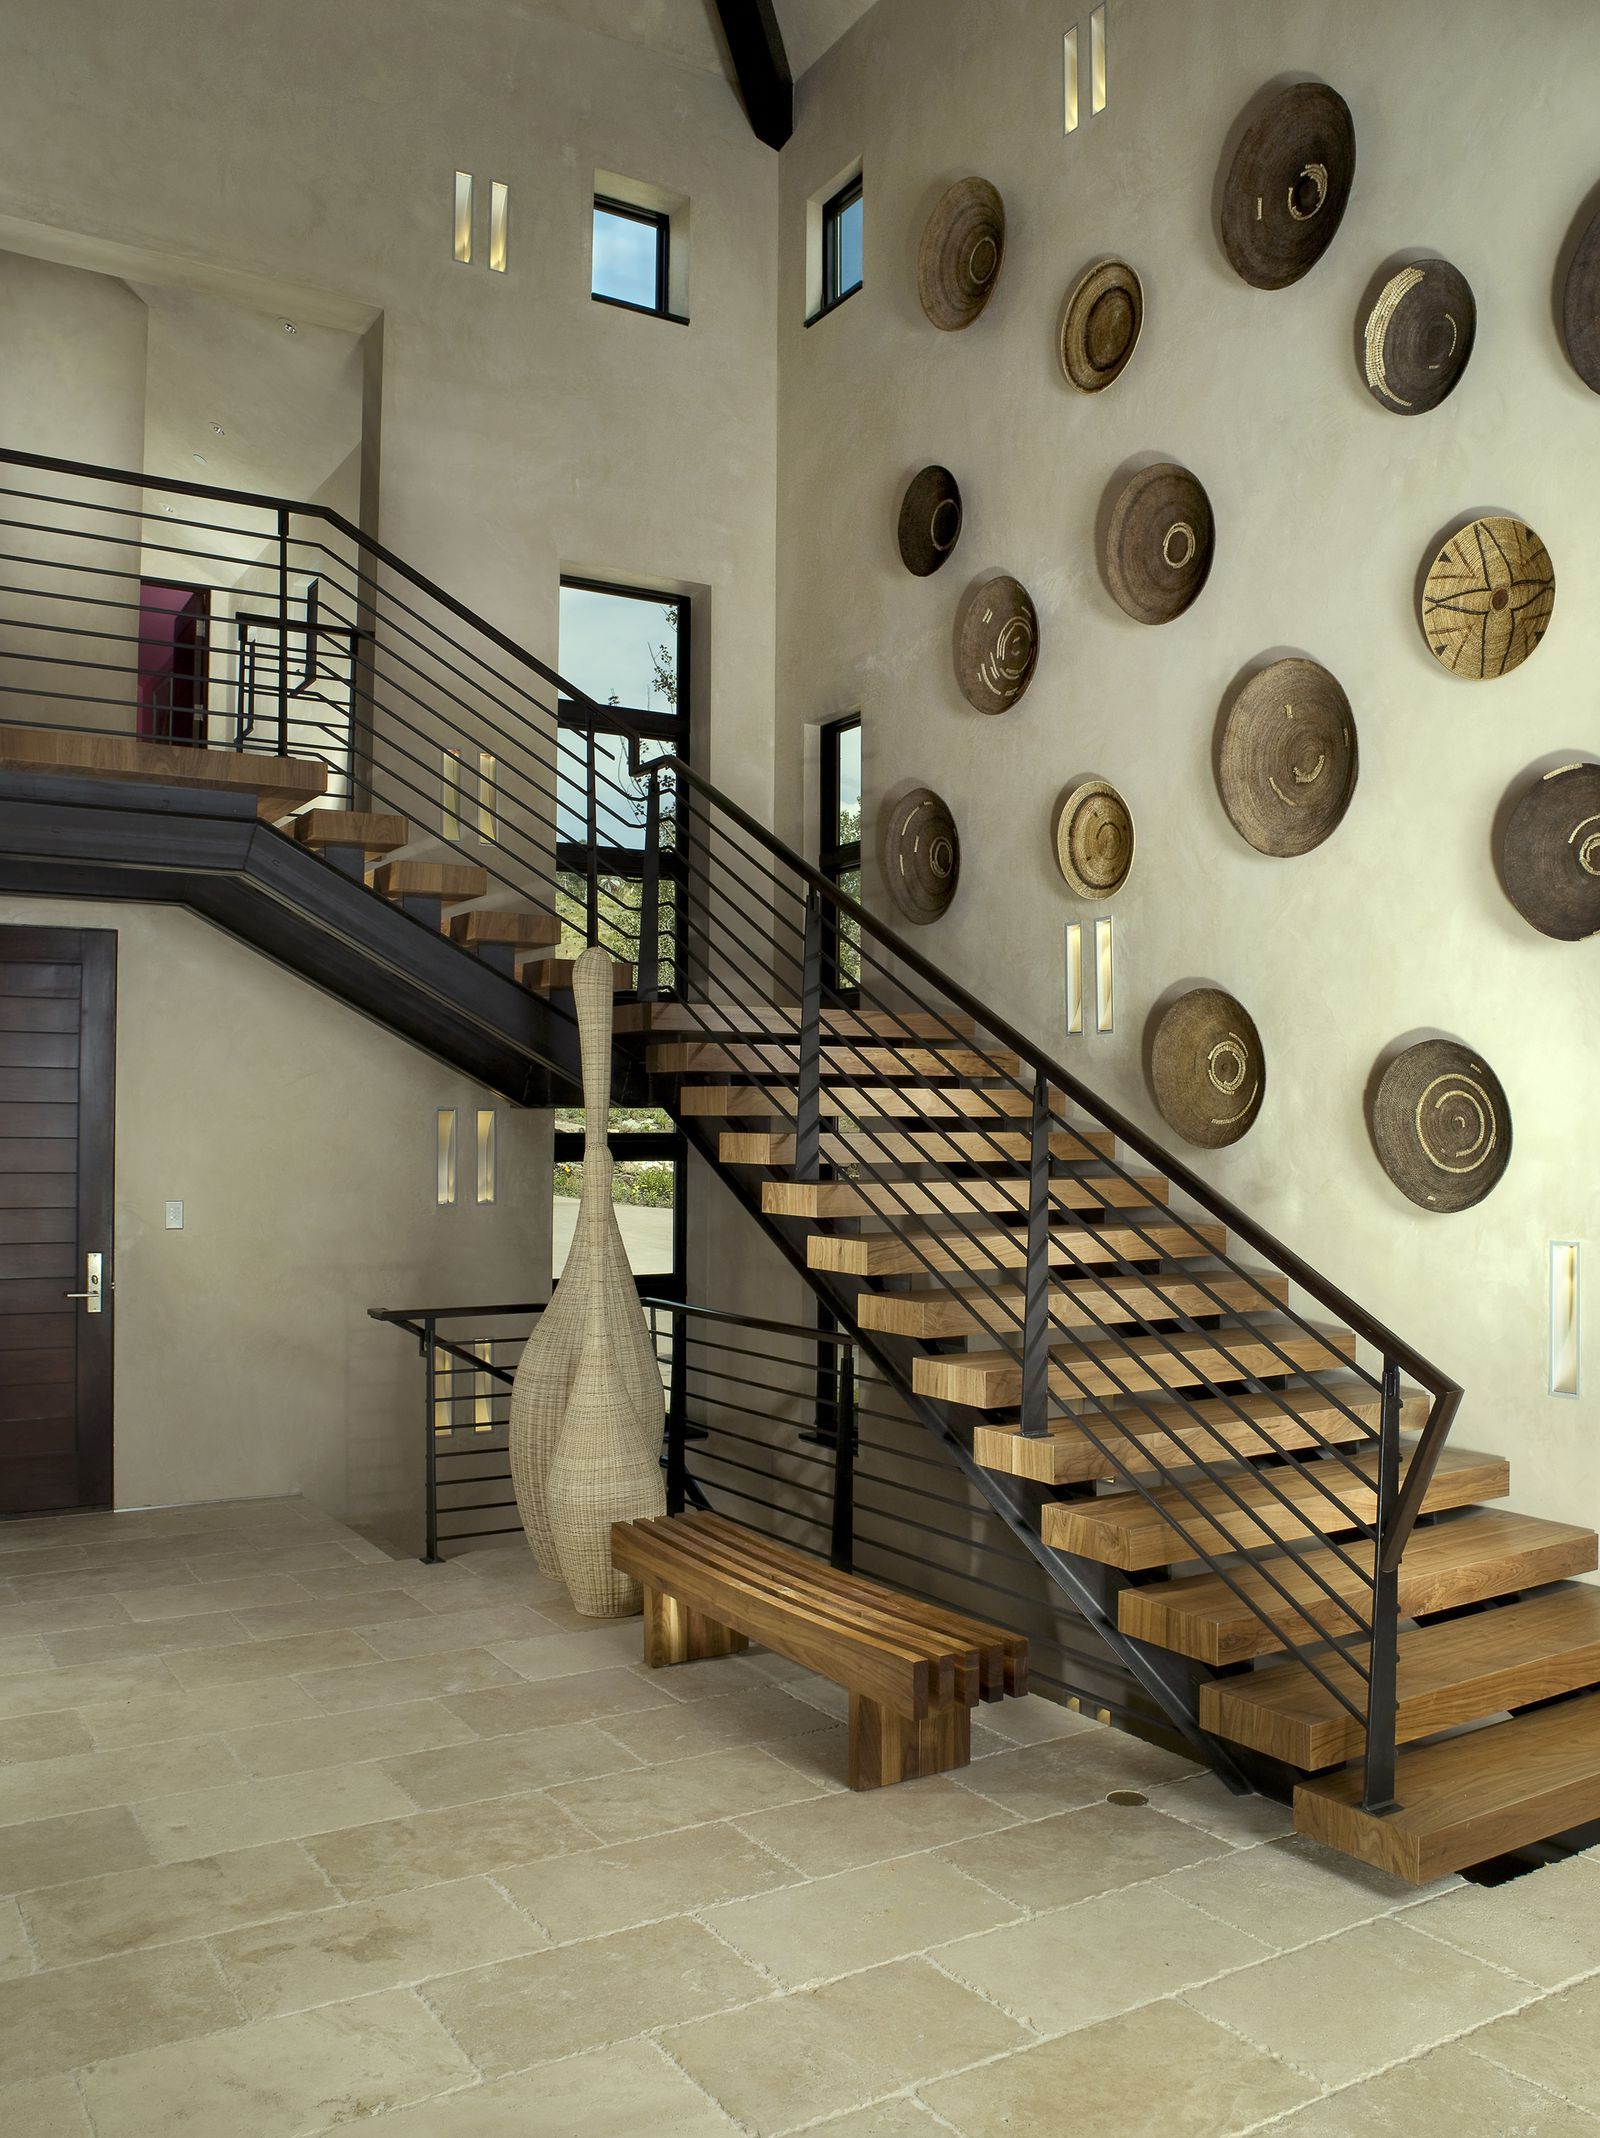 27 Stylish Staircase Decorating Ideas Staircase Wall Decor Staircase Design Stairway Decorating